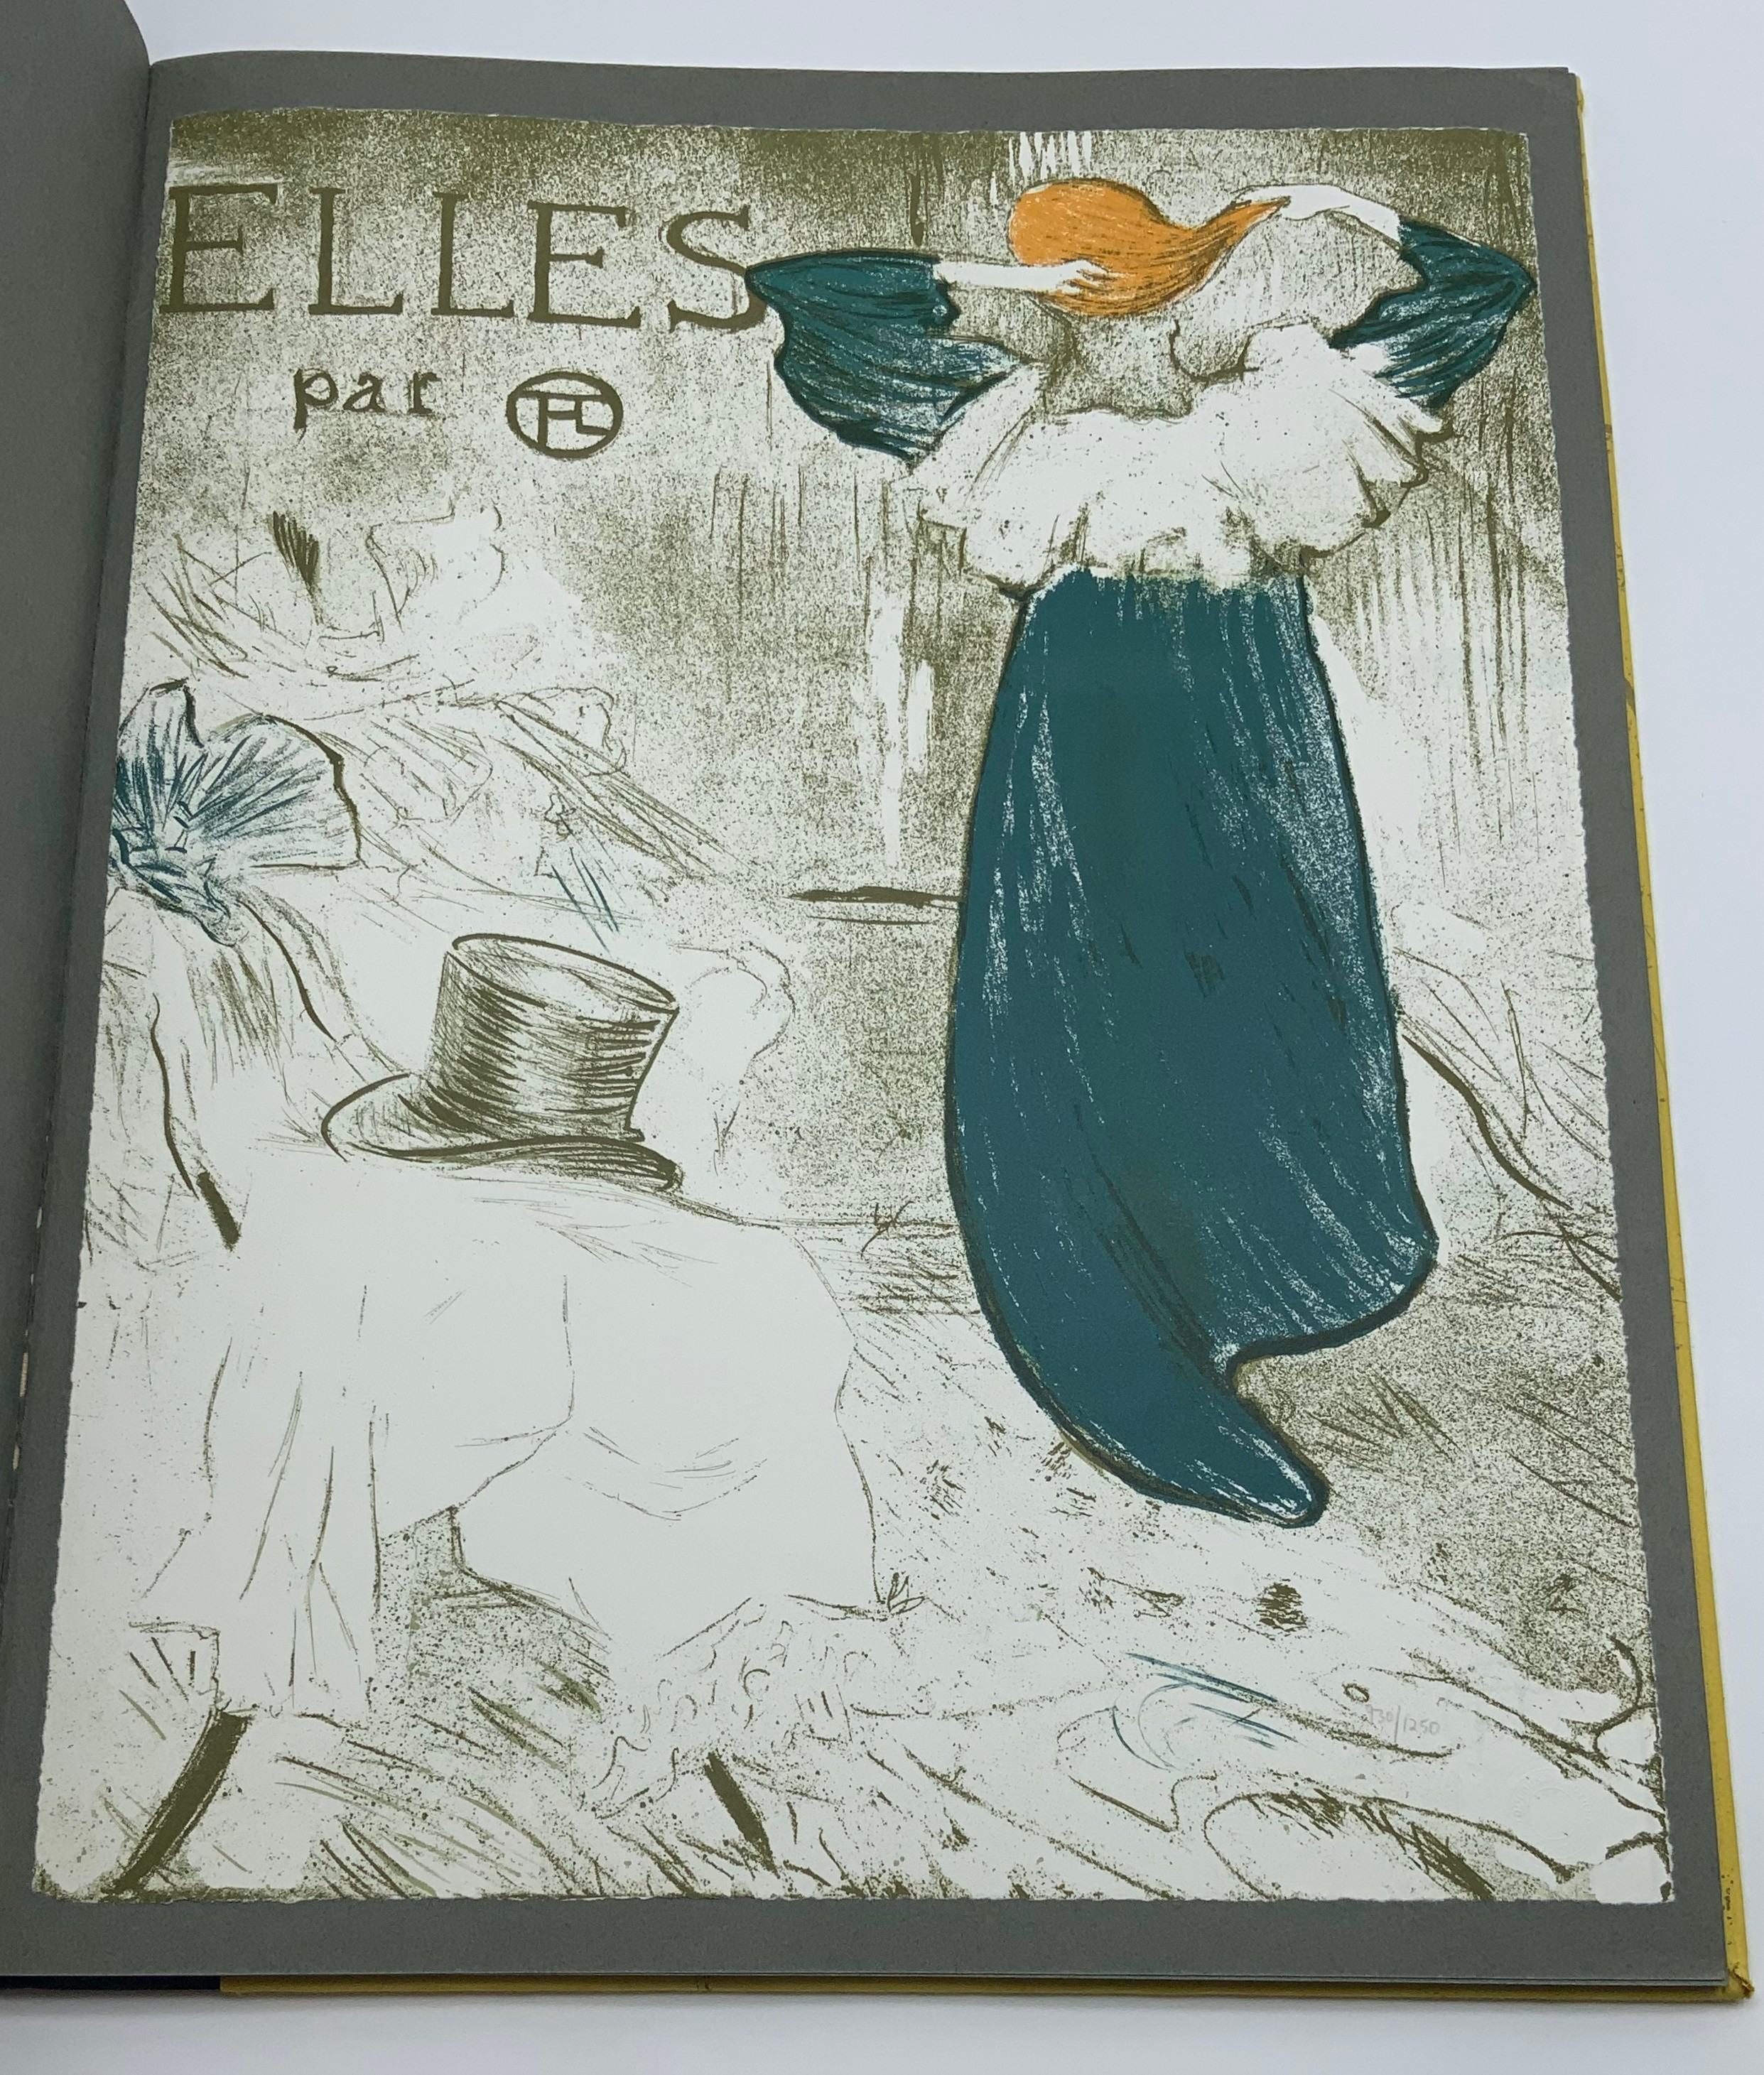 ELLES THE TOULOUSE-LAUTREC CIRCLE, 1969 HARDCOVER 1ST EDITION LIMITED EDITION - Image 2 of 6